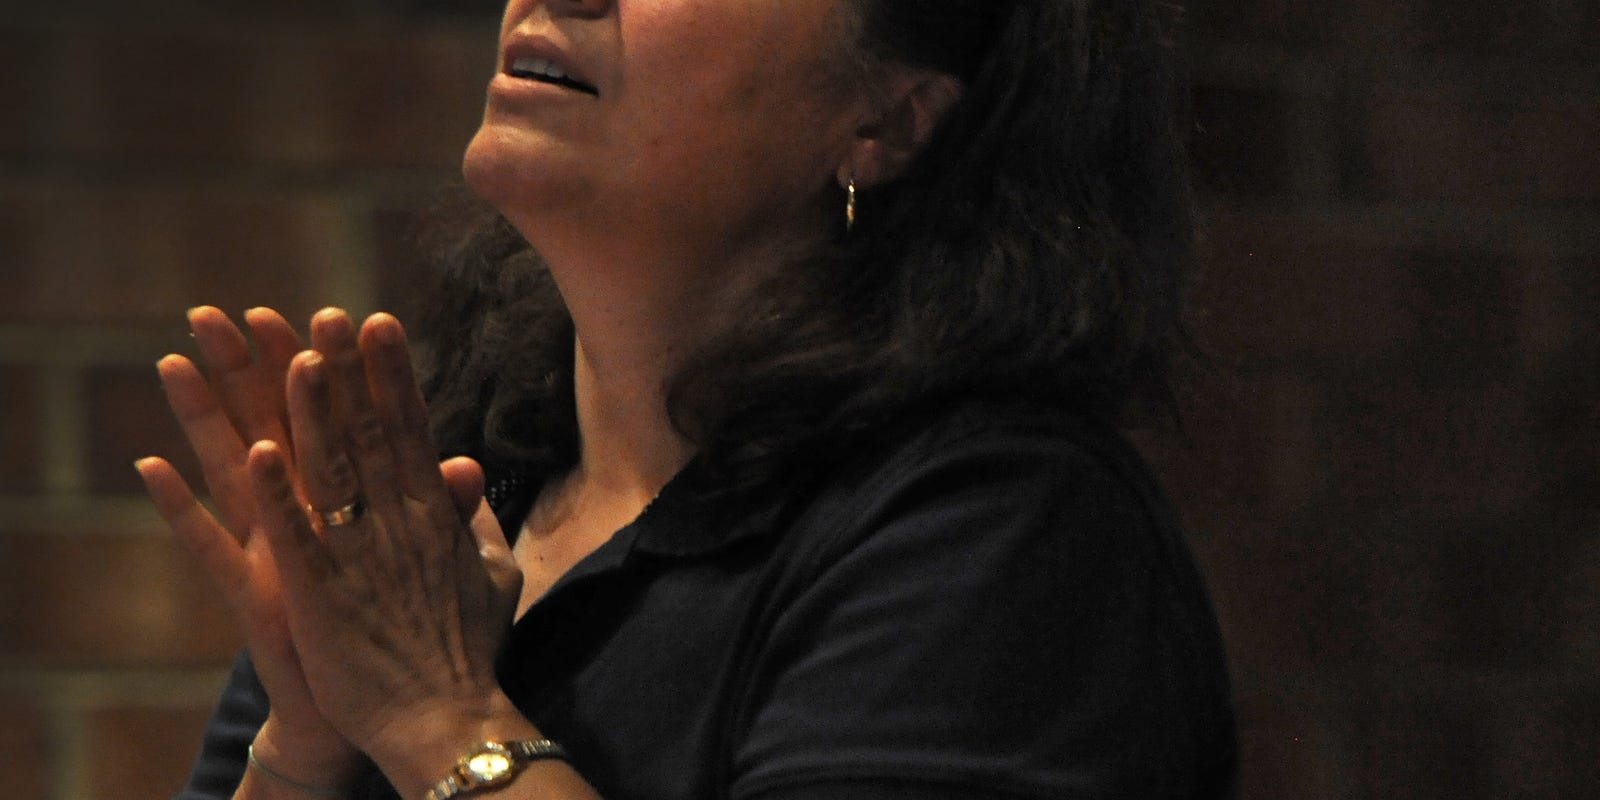 Nashville's charismatic Catholics want more from church